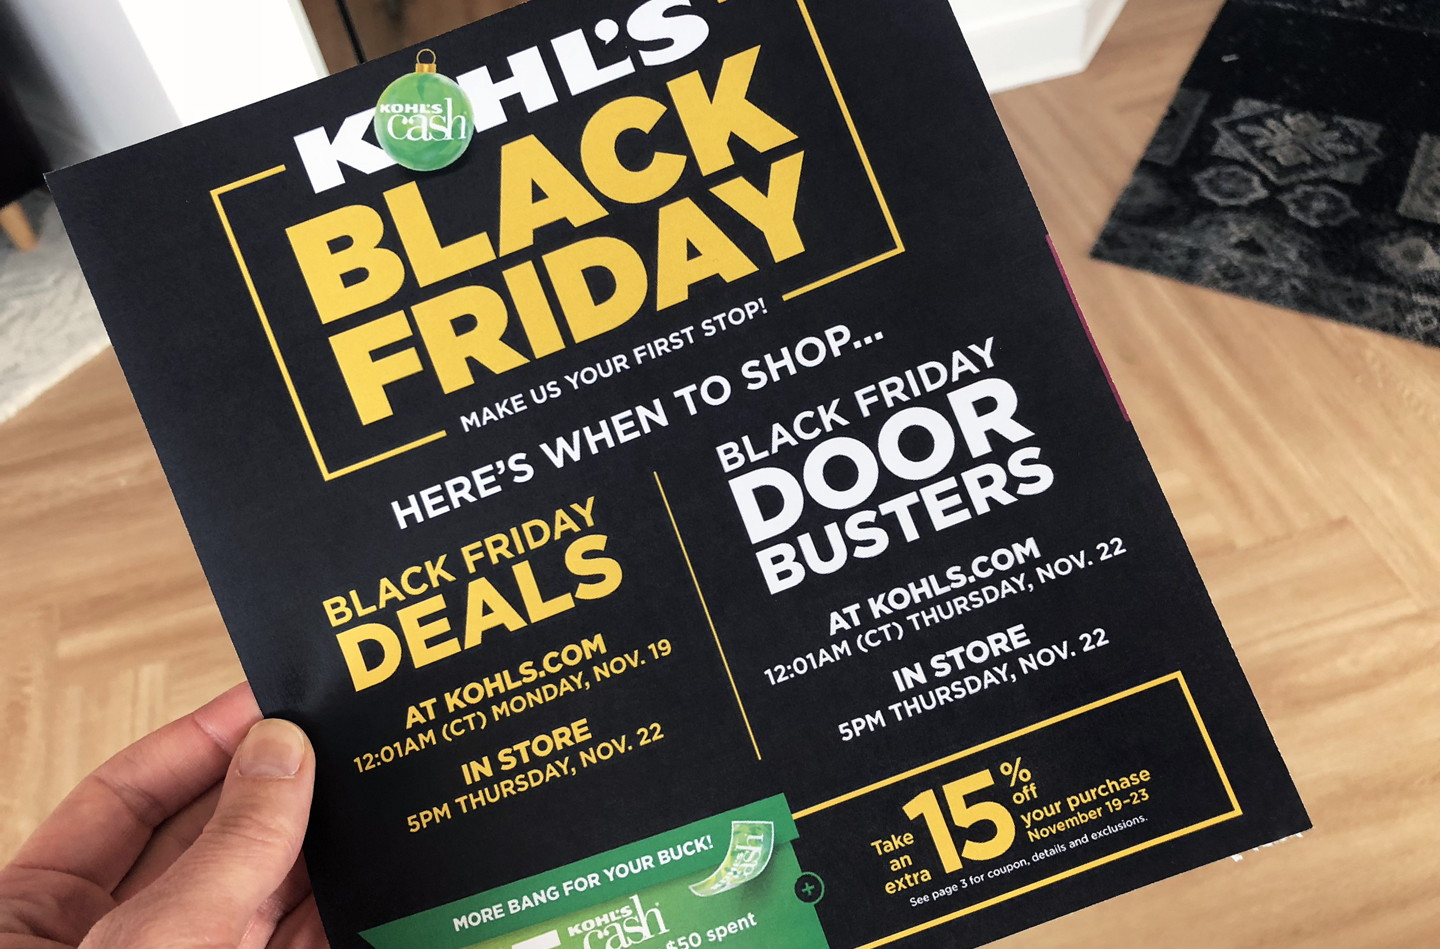 db23355d12fe Top 20 Kohl s Black Friday Deals for 2018! - The Krazy Coupon Lady